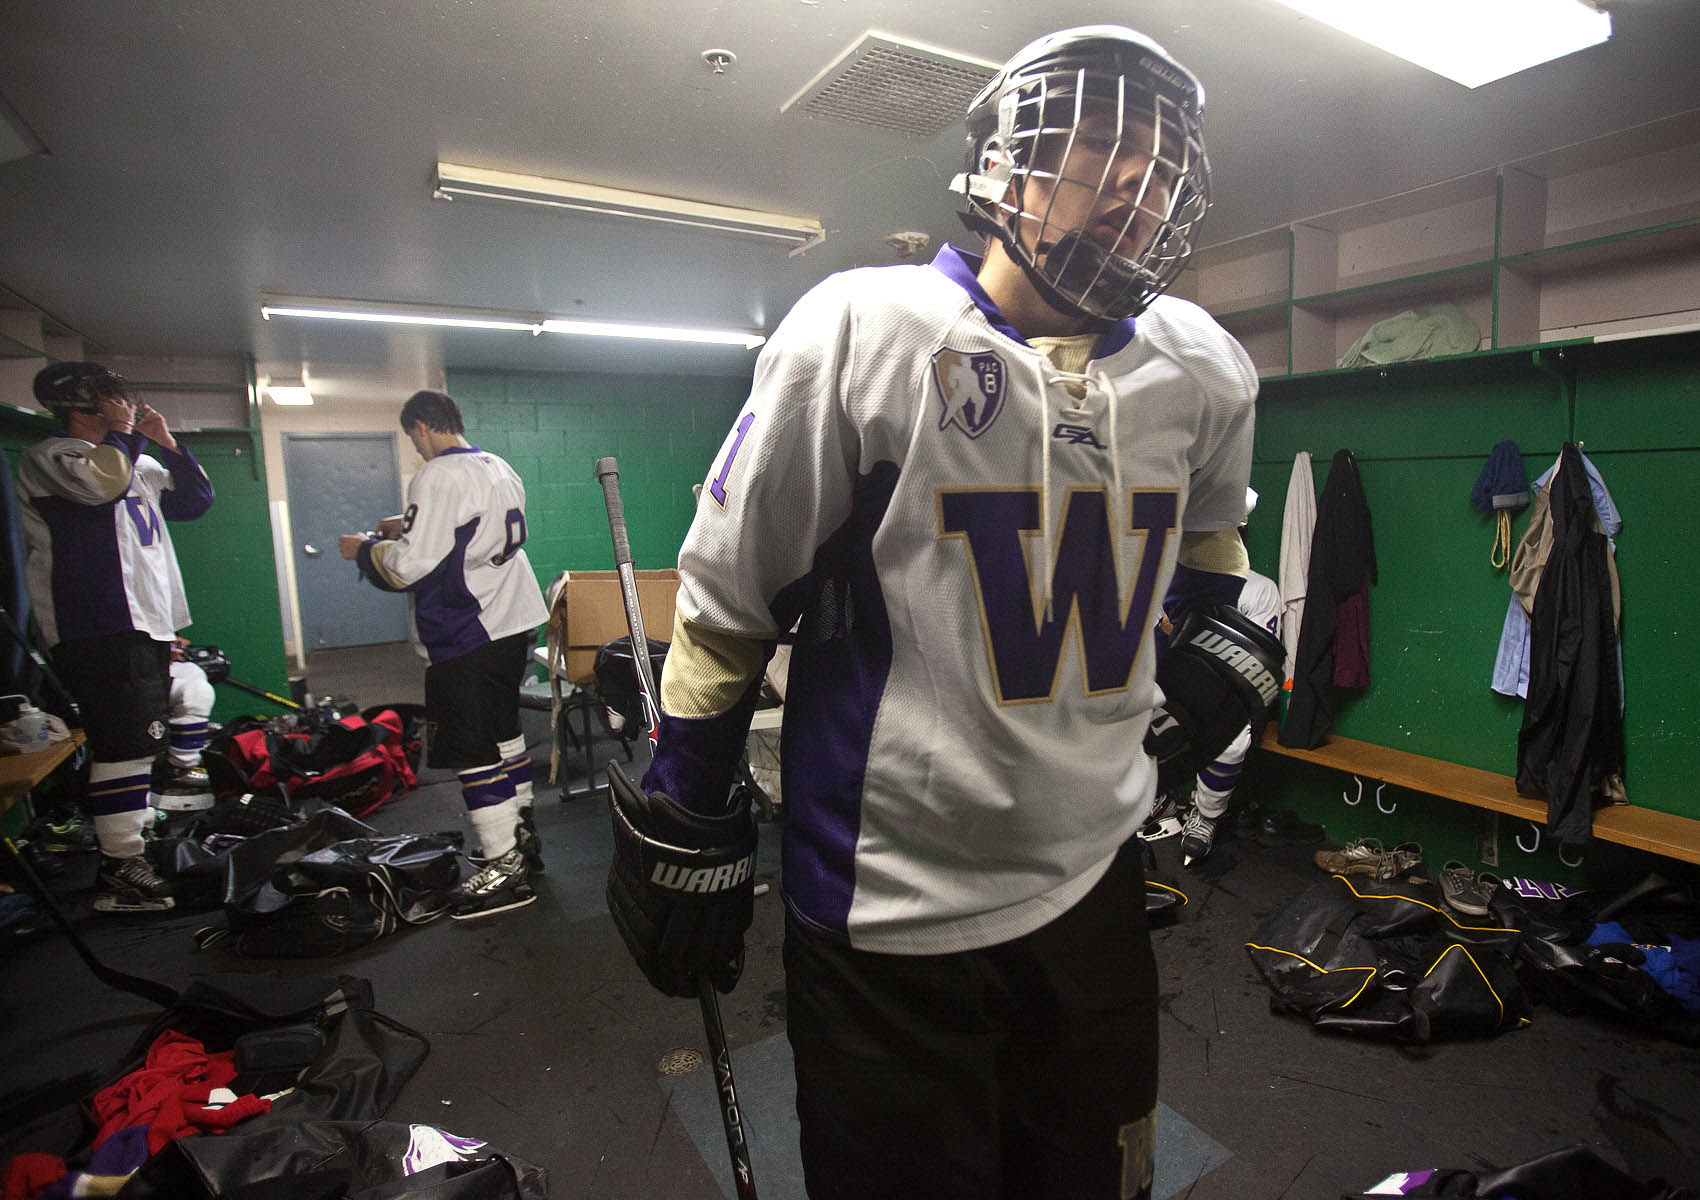 UW_Hockey_Lockeroom